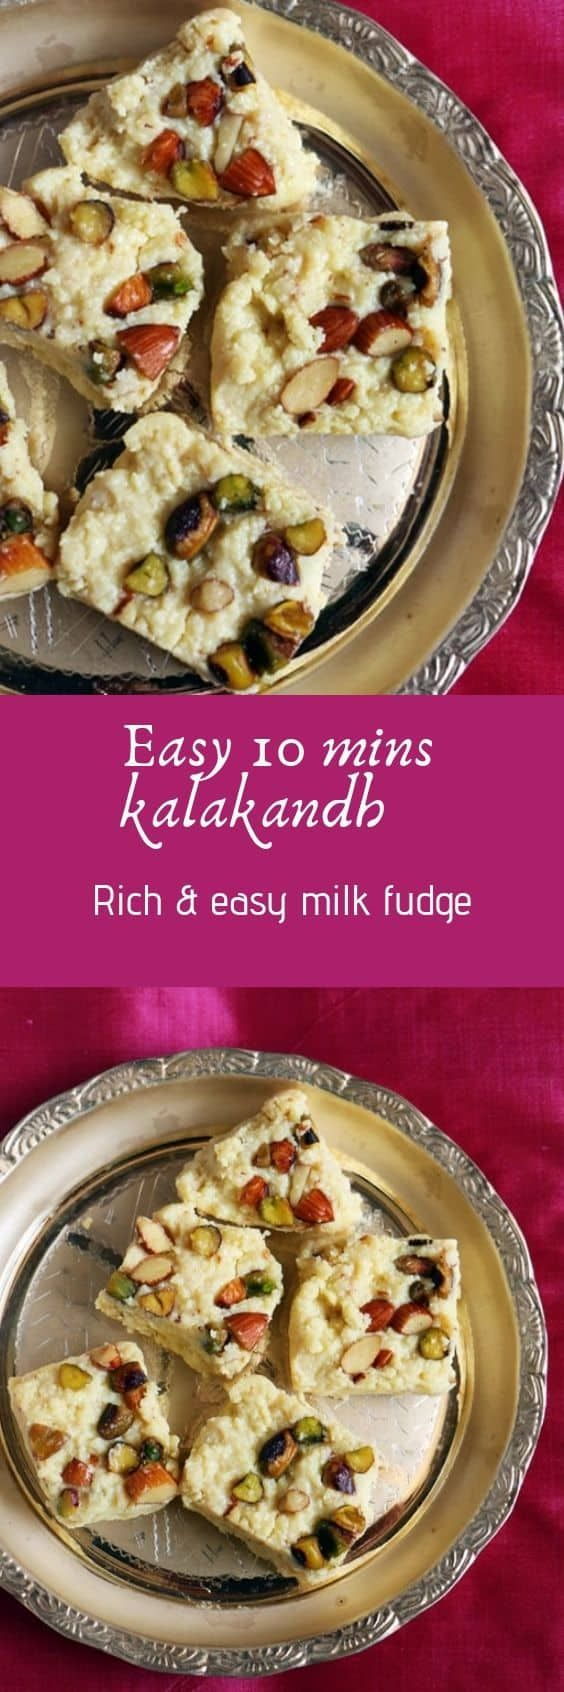 Kalakand Recipe In 10 Minutes With Step By Step Photos Kalakand Is A Very Rich And Delicious Traditional Indian Mi Kalakand Recipe Indian Food Recipes Recipes